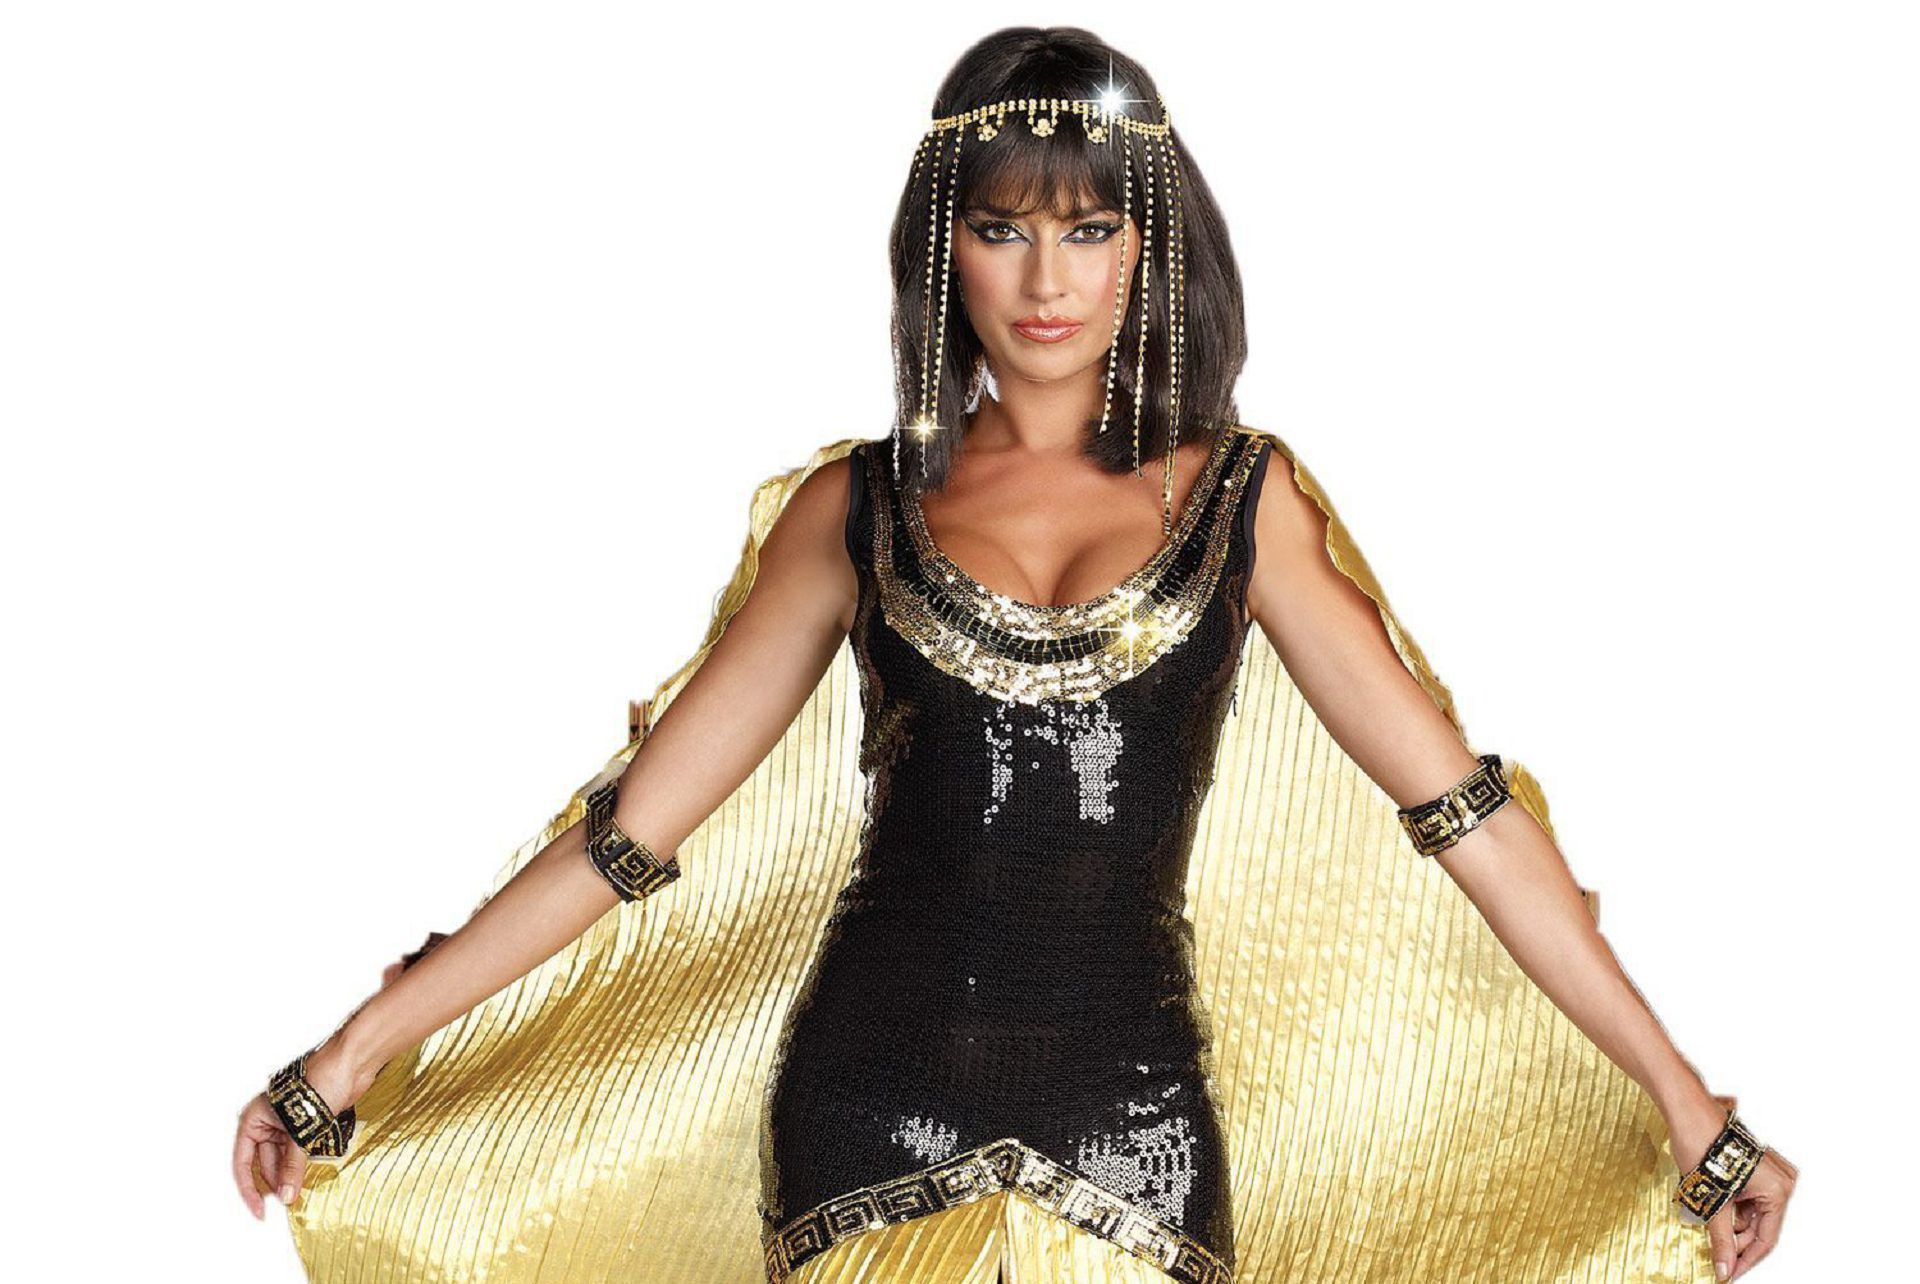 H D Picture Of Queen Cleopatra: Cleopatra Wallpapers Backgrounds